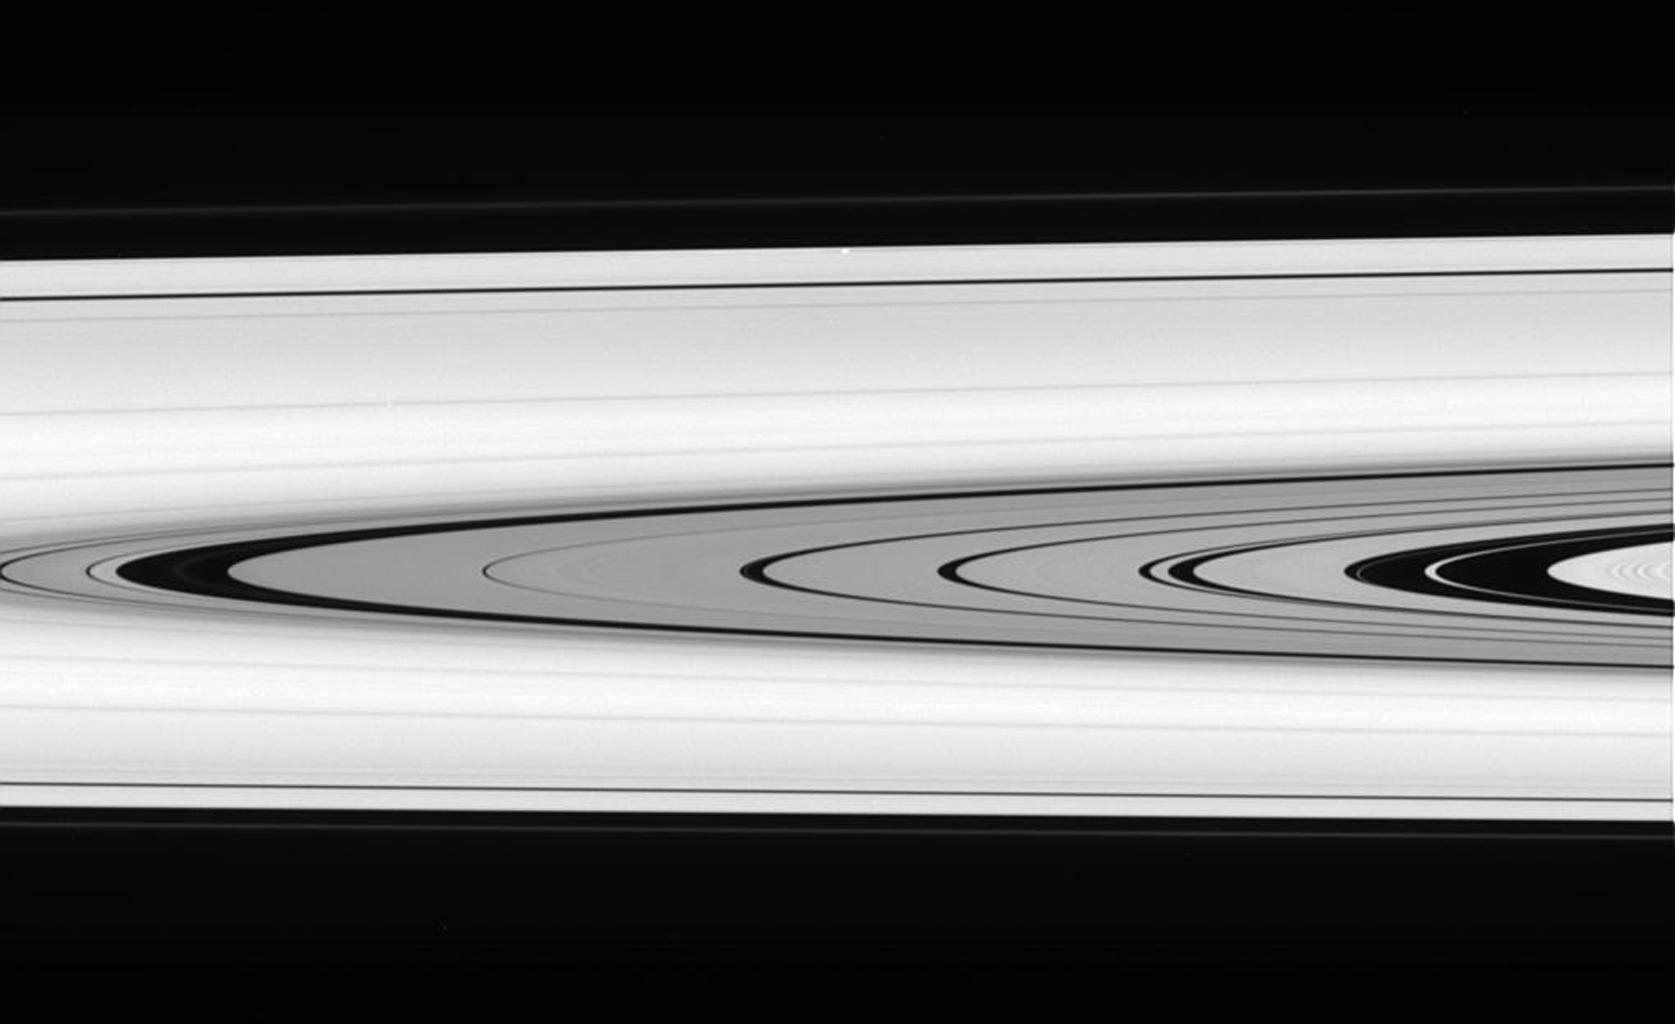 This splendid view from NASA's Cassini spacecraft offers a detailed look at the faint rings within the Cassini Division as well as a rare glimpse of the Keeler gap moon, Daphnis.